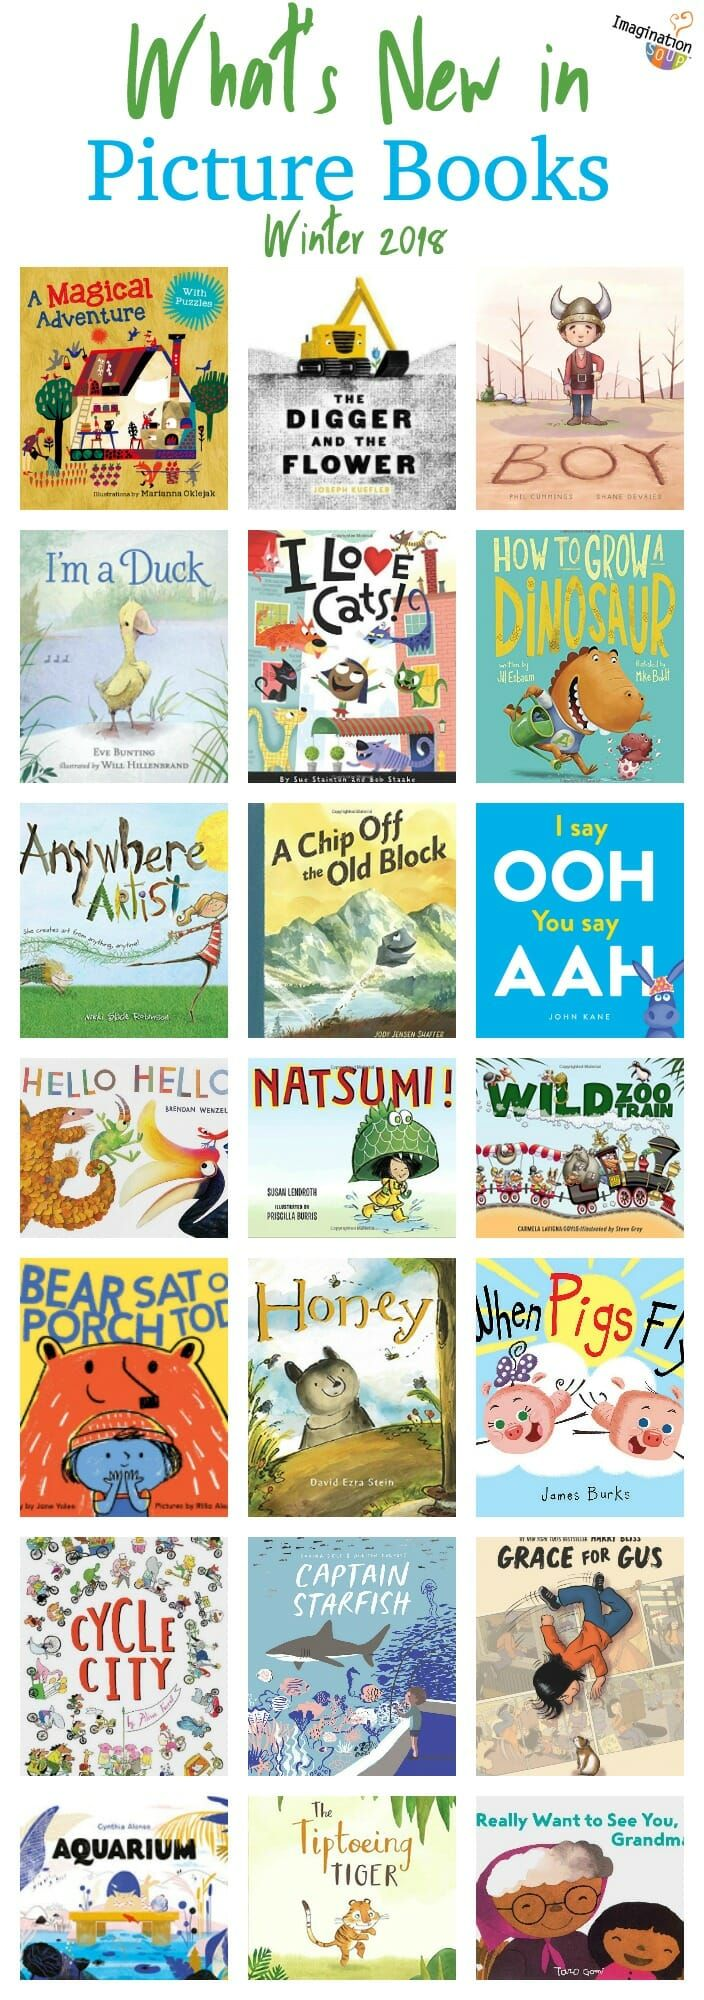 Do you love finding new picture books your kids will love? Here's the best of what you'll see on the new shelf at your library or bookstore.